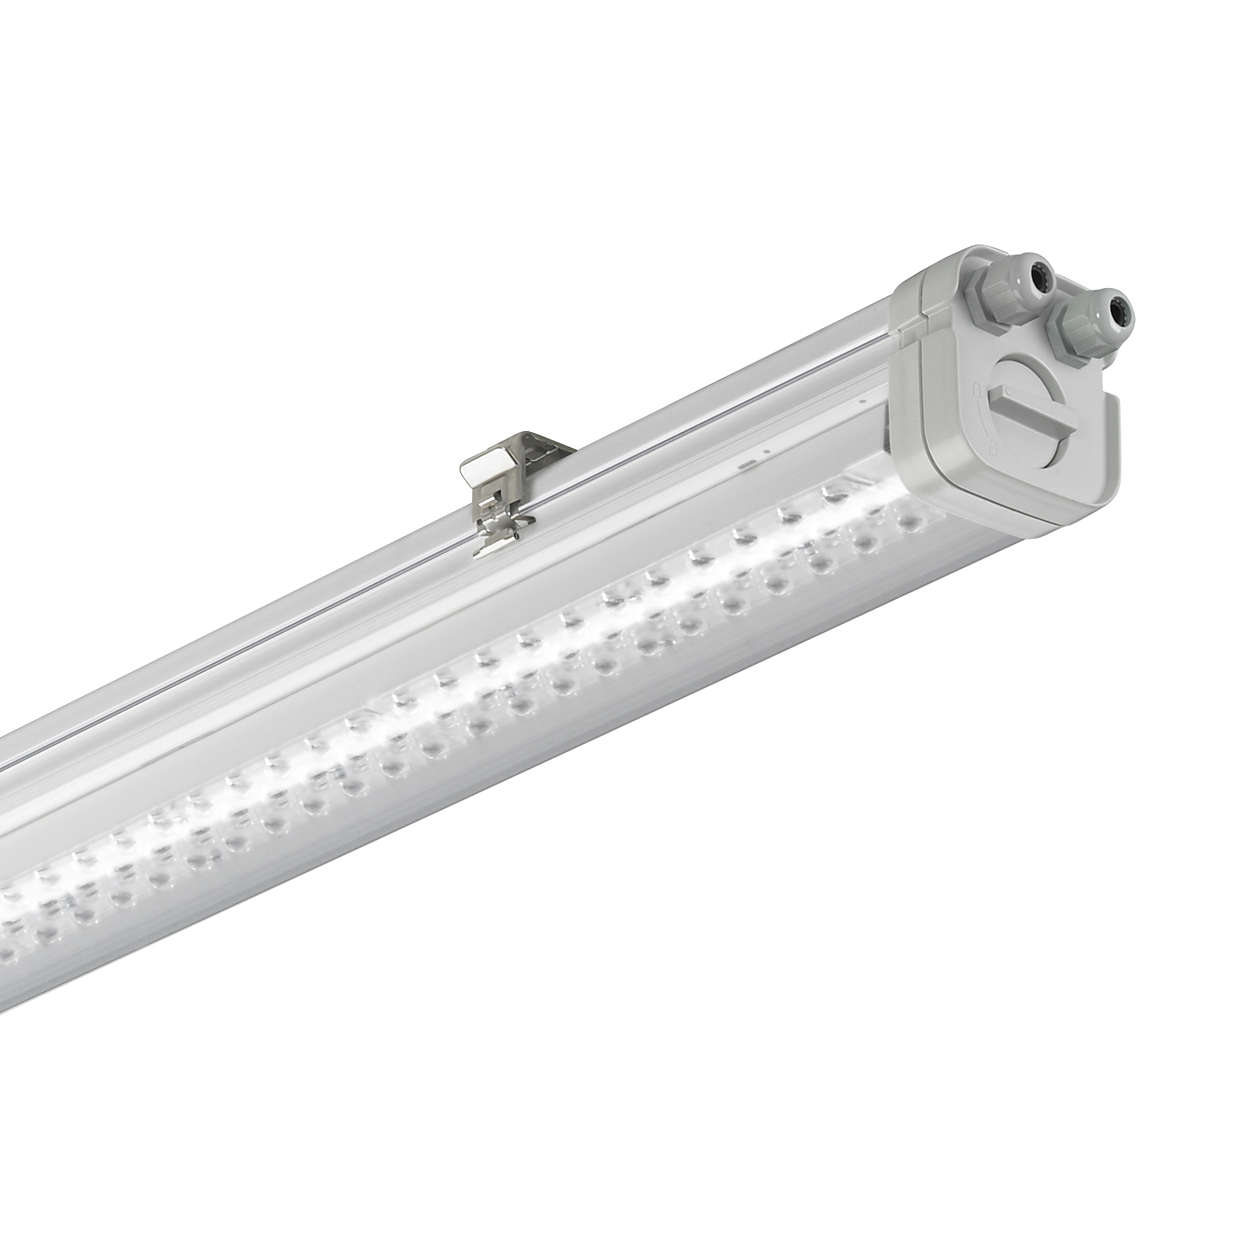 Pacific LED WT460C – substantial energy savings and excellent beam control